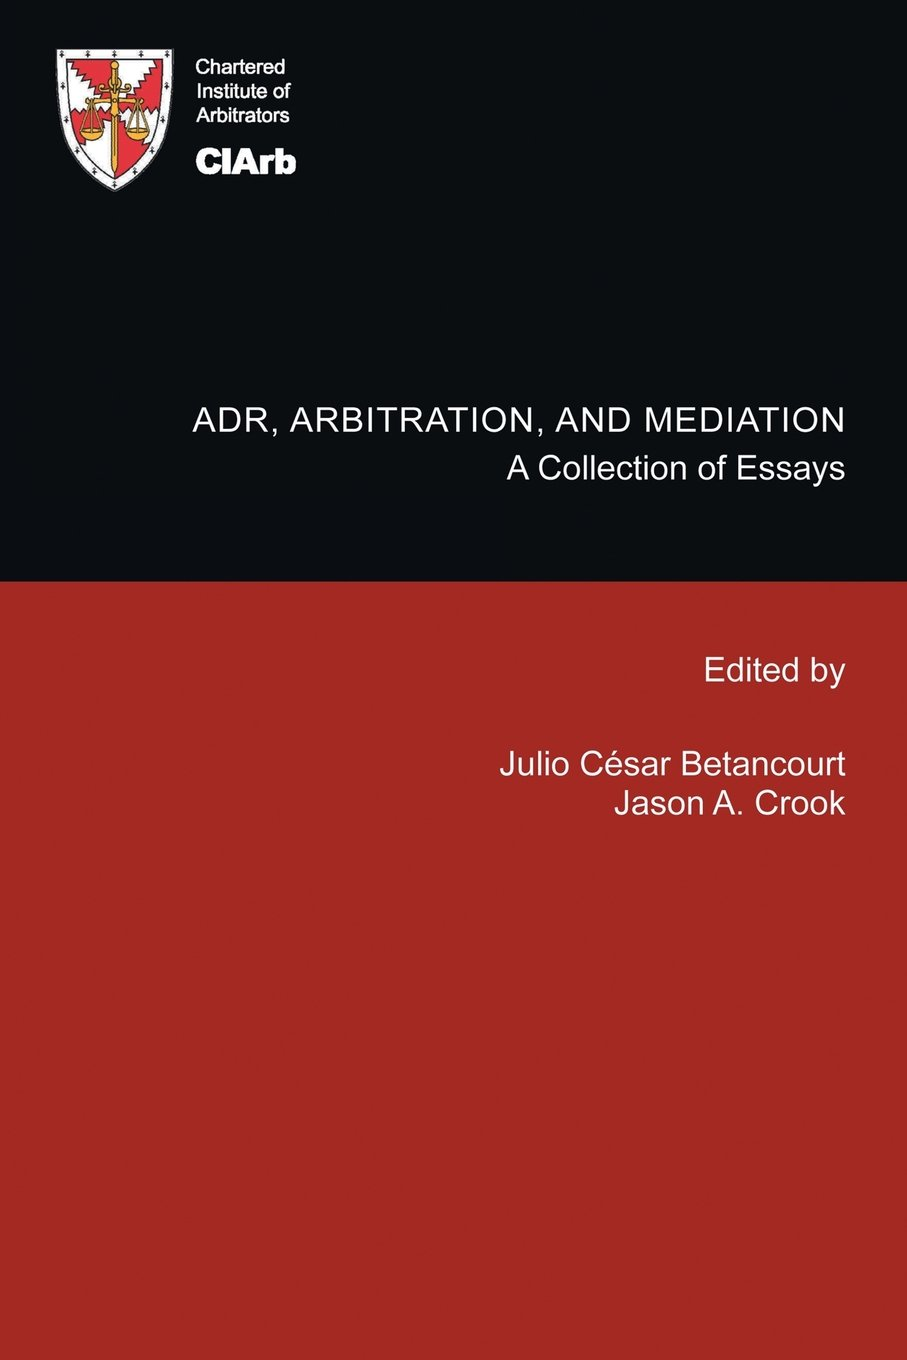 adr arbitration and mediation a collection of essays amazon co adr arbitration and mediation a collection of essays amazon co uk julio catildecopysar betancourt 9781491886649 books